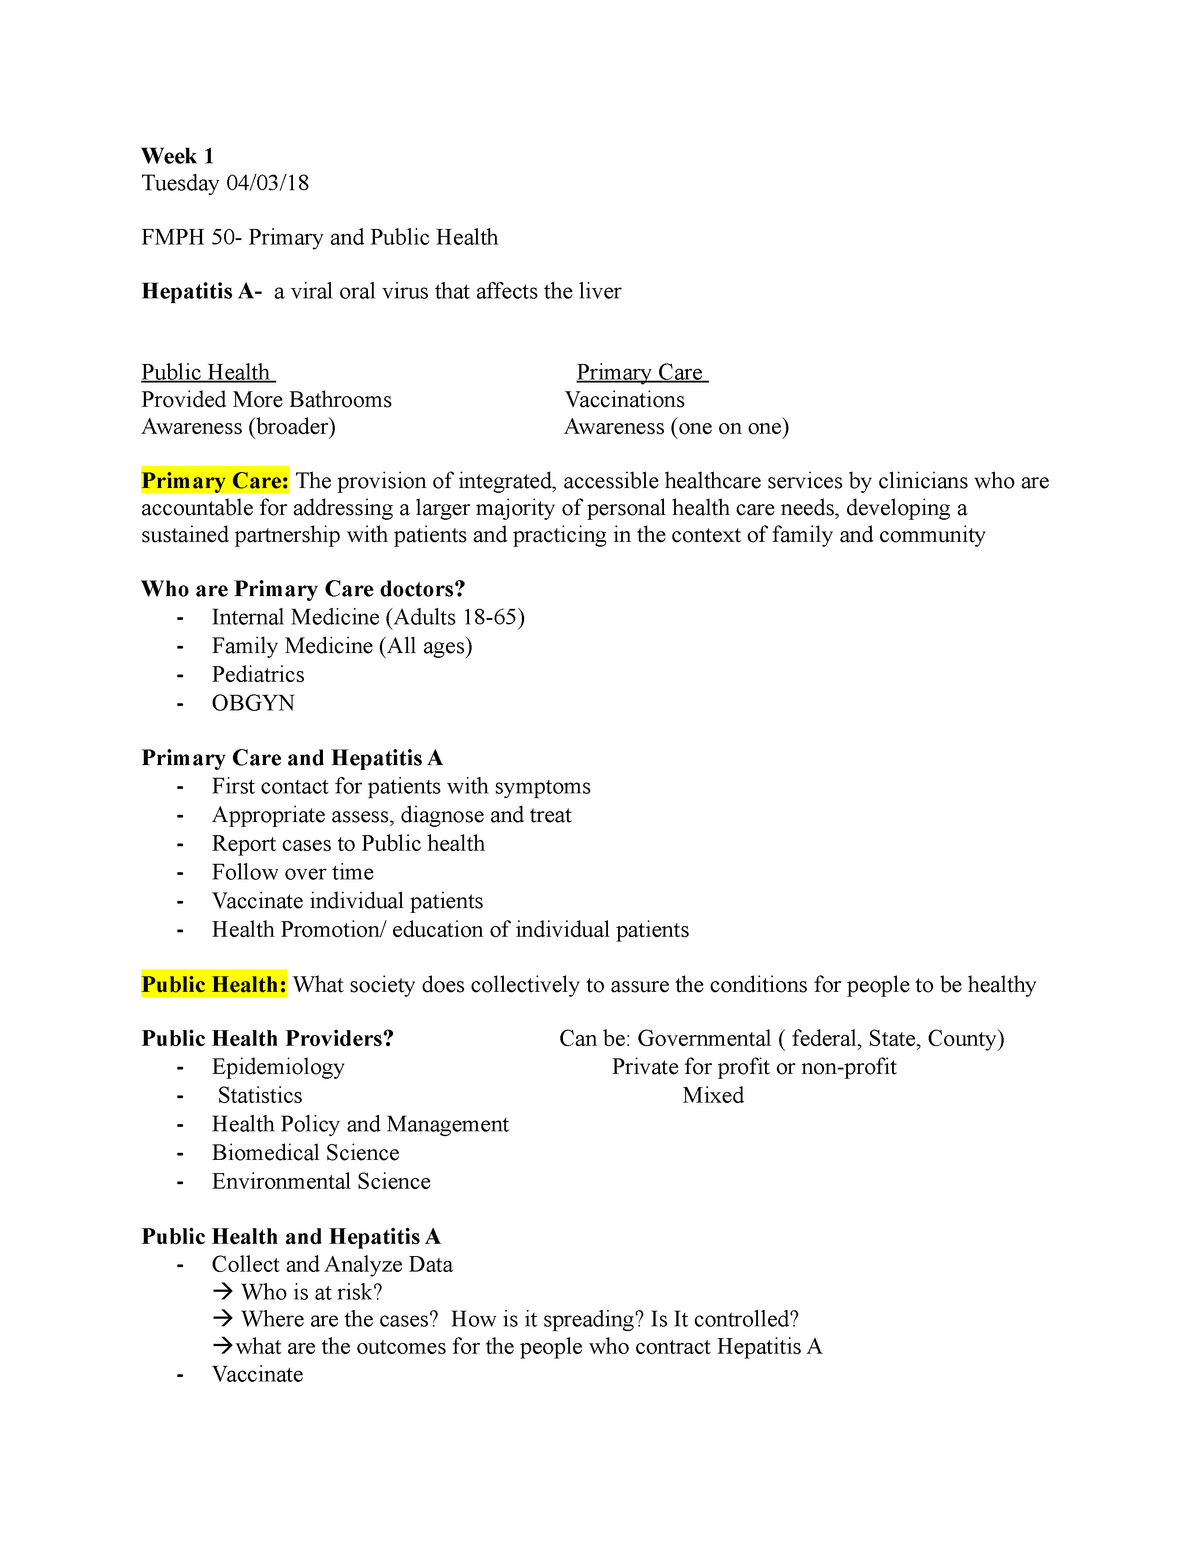 Lecture Notes 1 - FMPH 50 Primary Care and Public Health